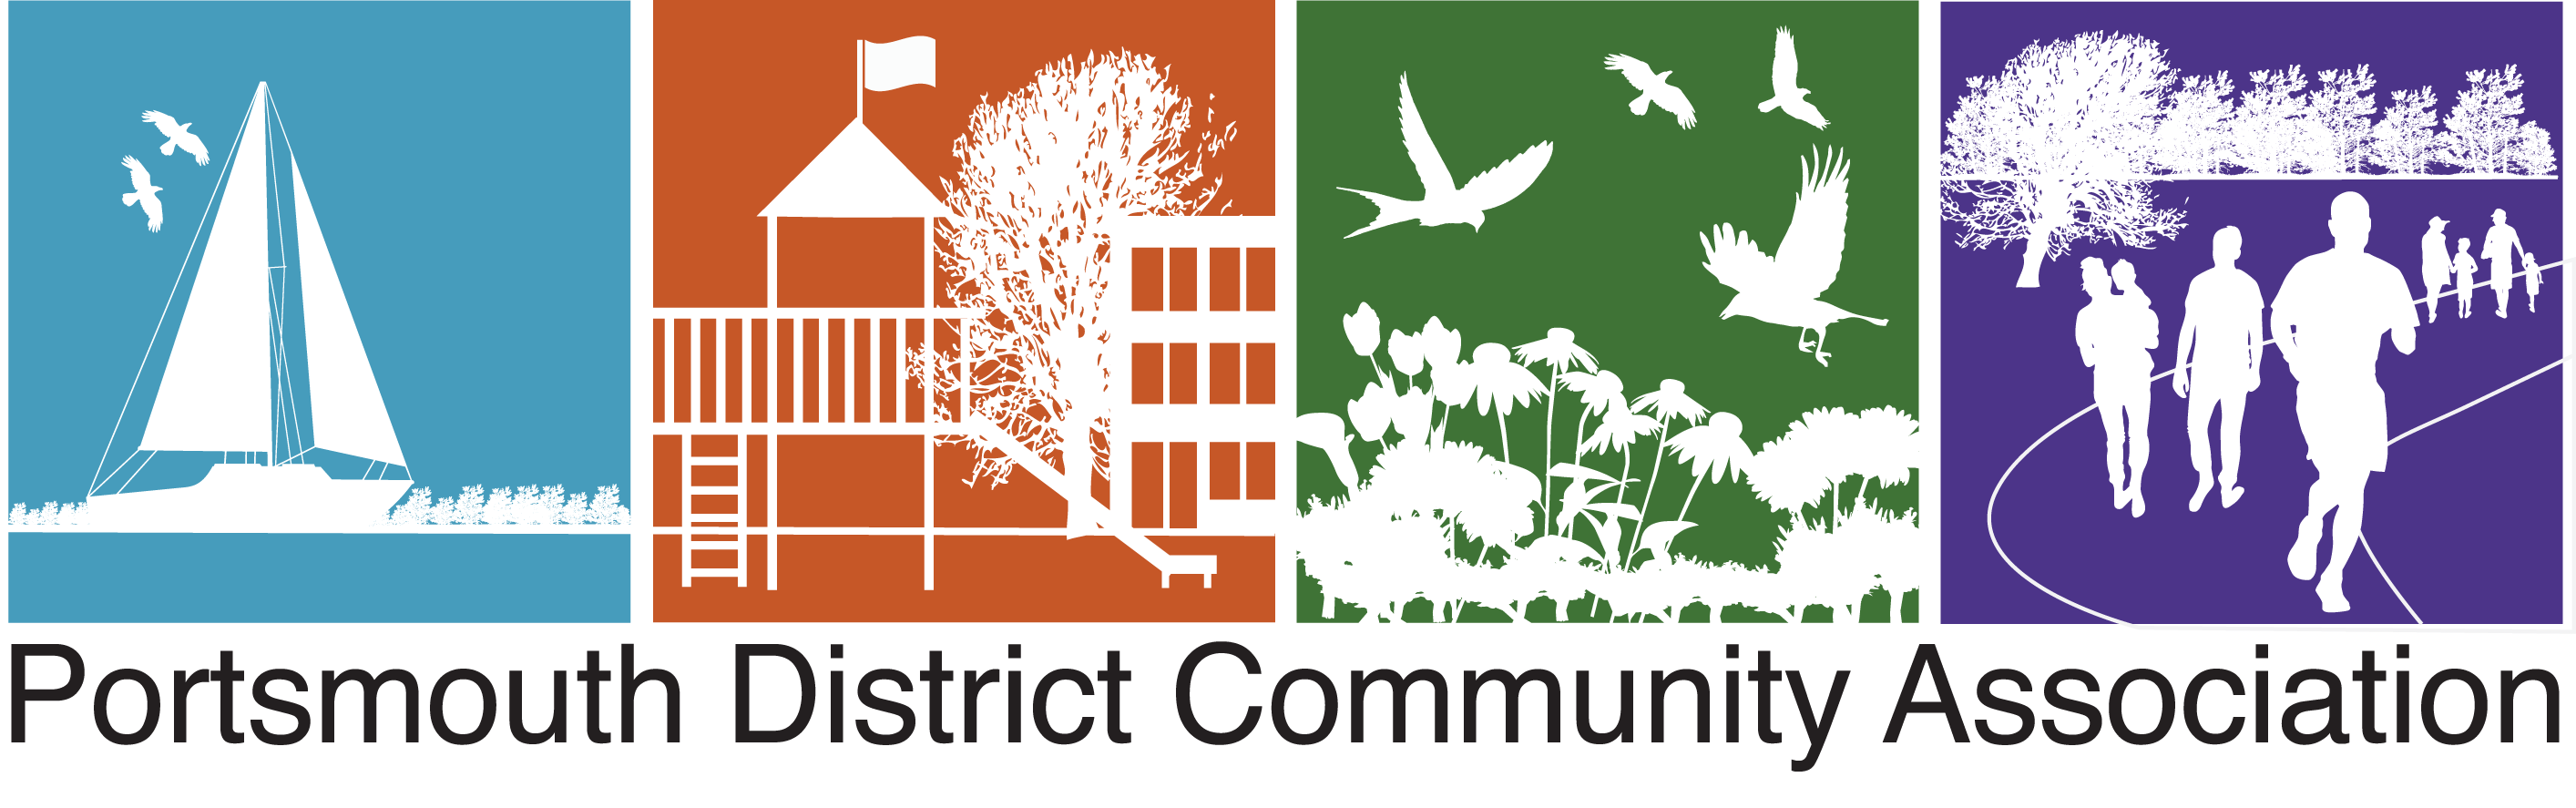 Portsmouth District Community Association